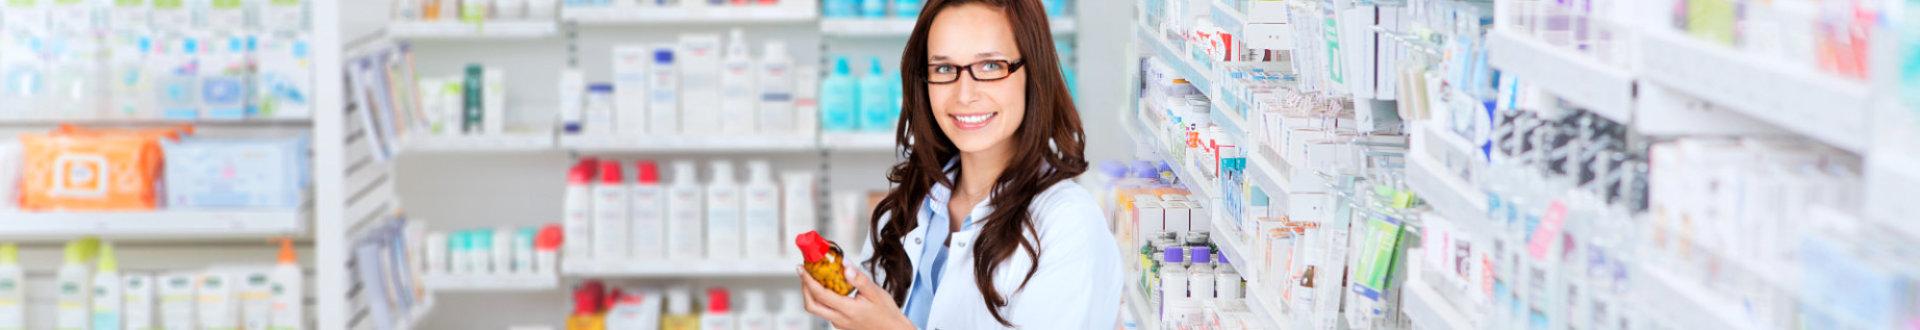 female pharmacist smiling while holding medicine